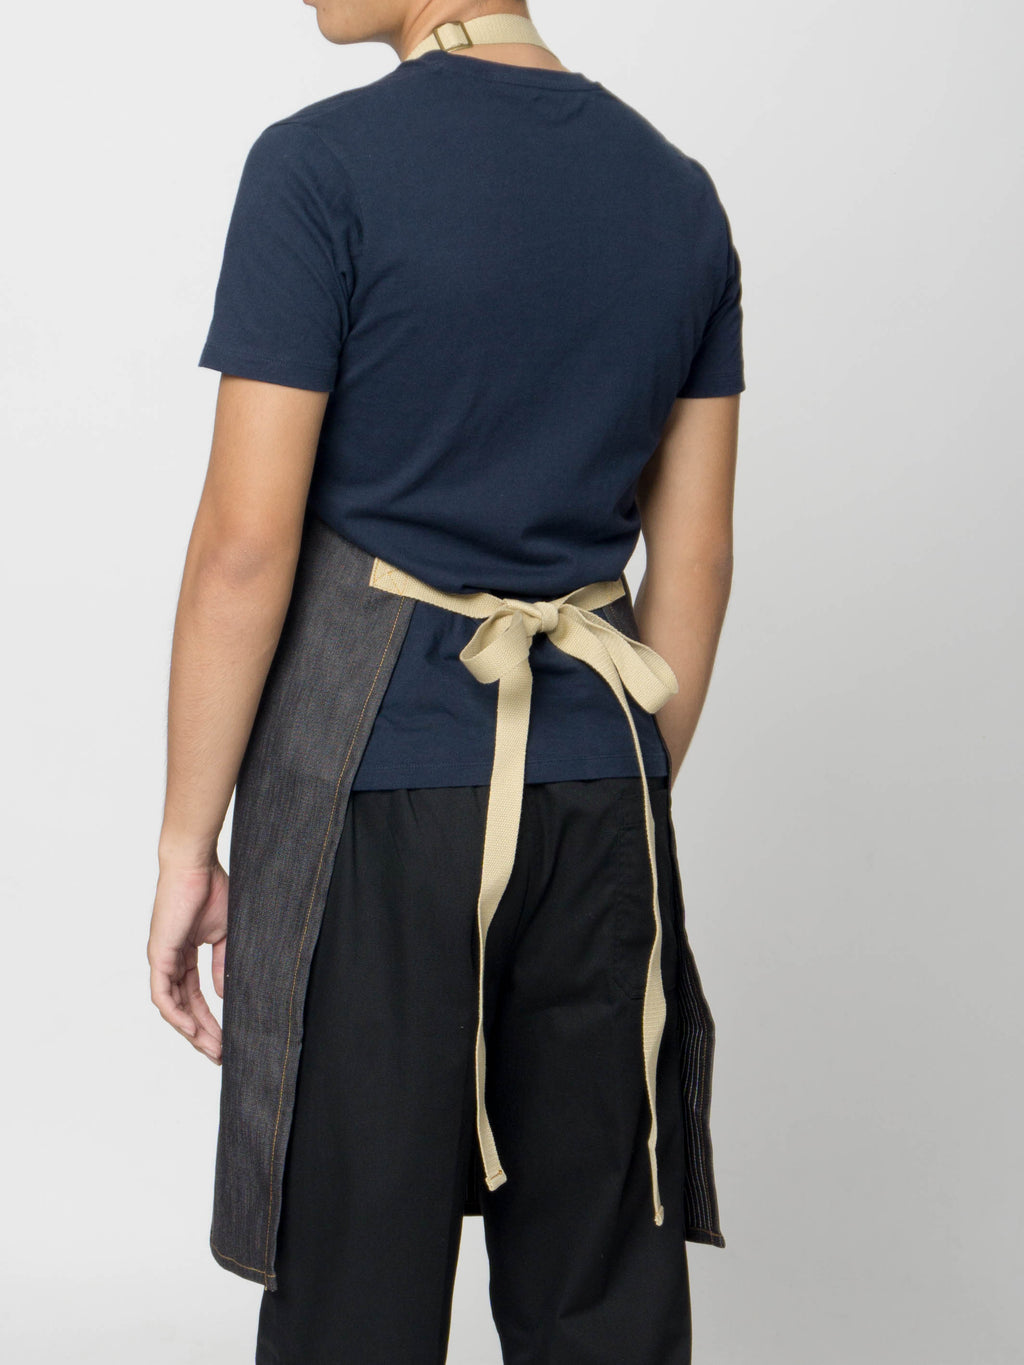 caleb denim bib apron back view